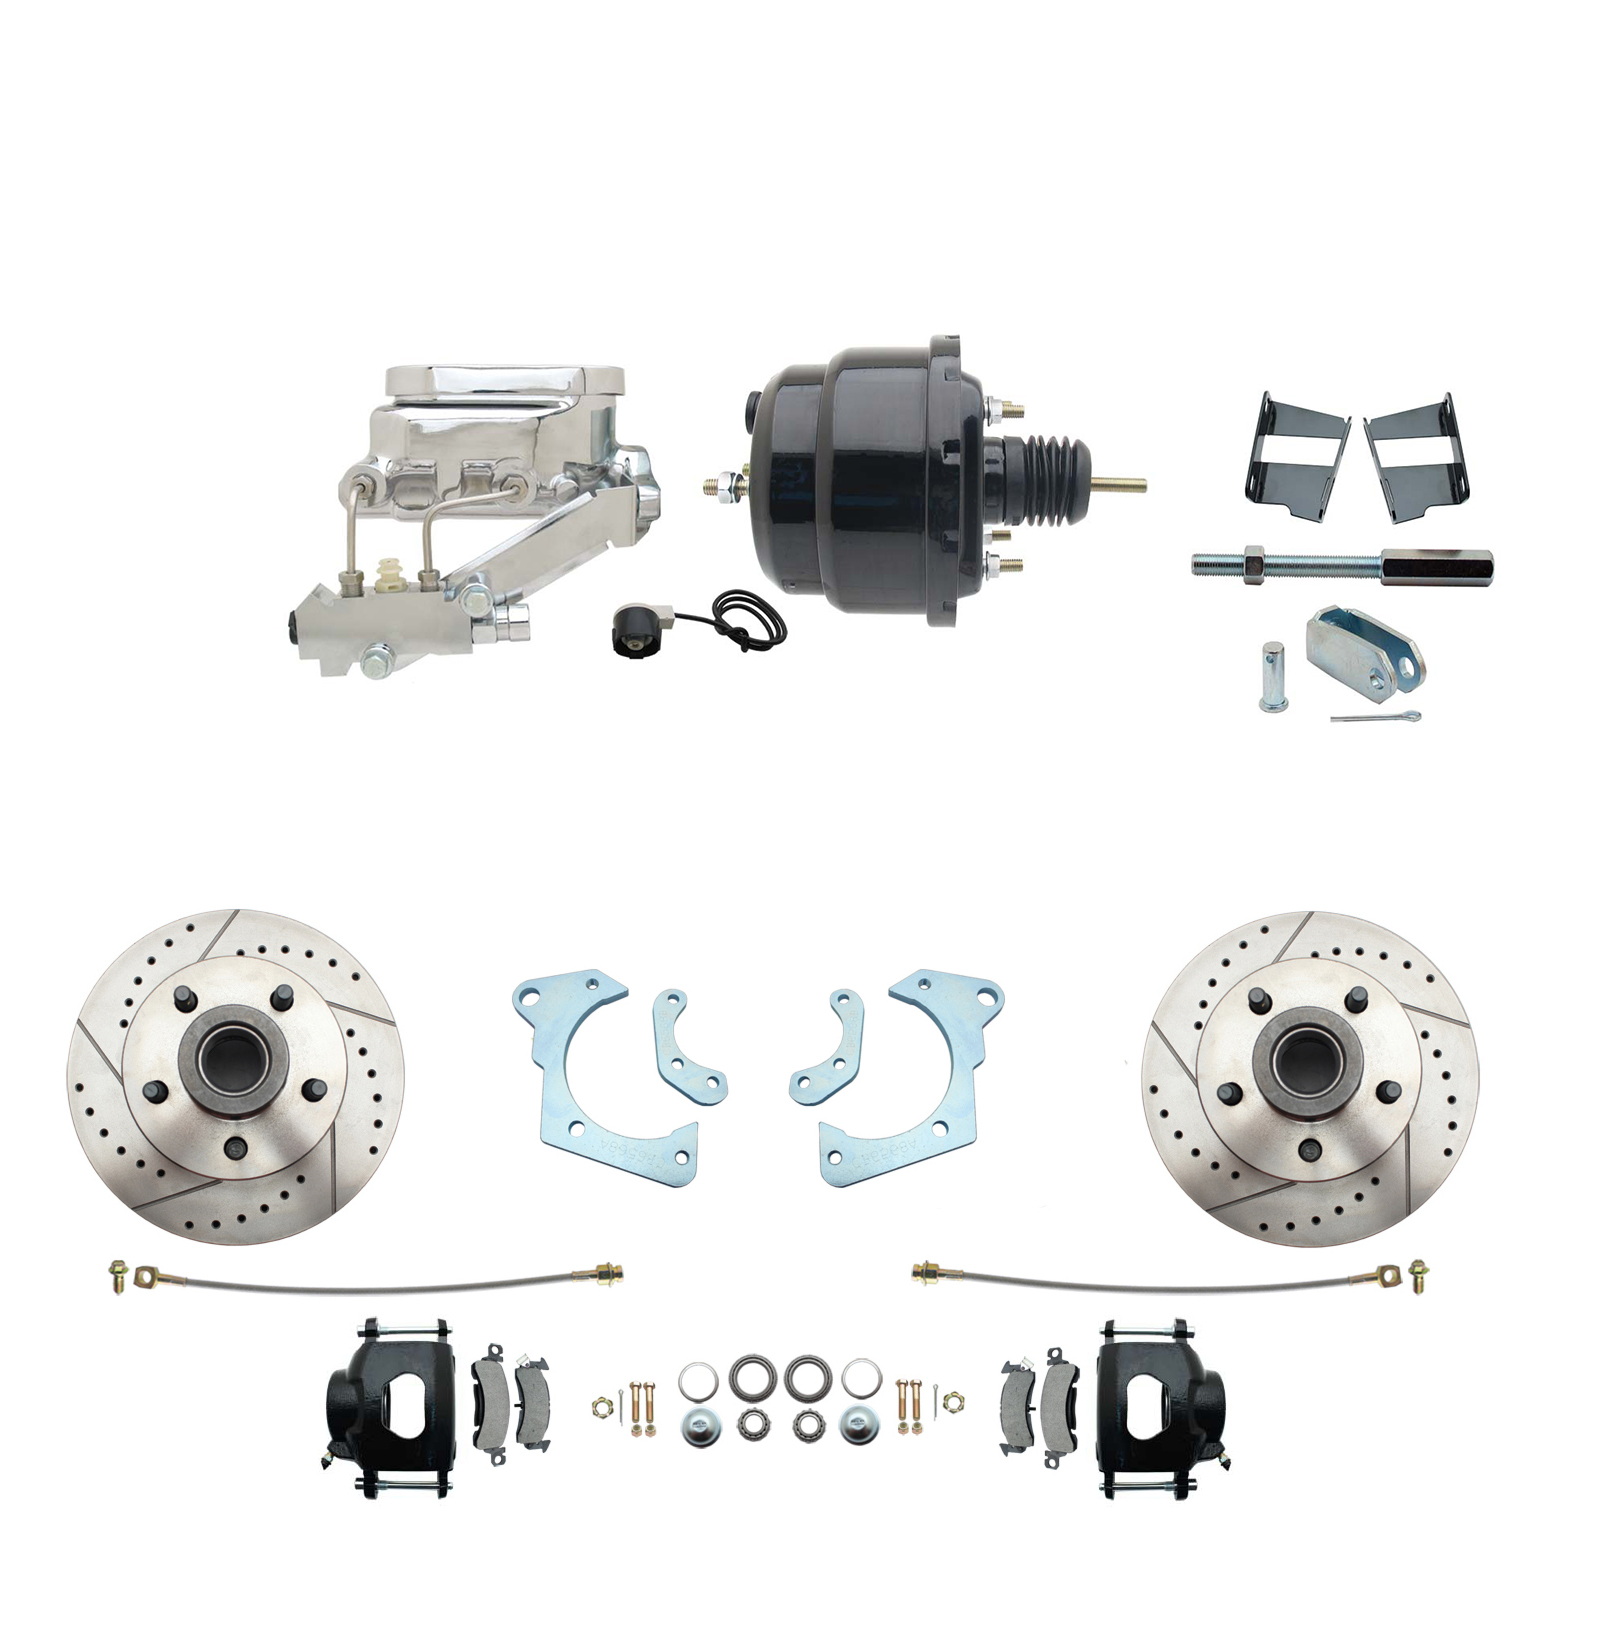 1965-1968 GM Full Size Front Disc Brake Kit Black Powder Coated Calipers Drilled/Slotted Rotors (Impala, Bel Air, Biscayne) & 8 Dual Powder Coated Black Booster Conversion Kit W/ Chrome Flat Top Master Cylinder Left Mount Dis